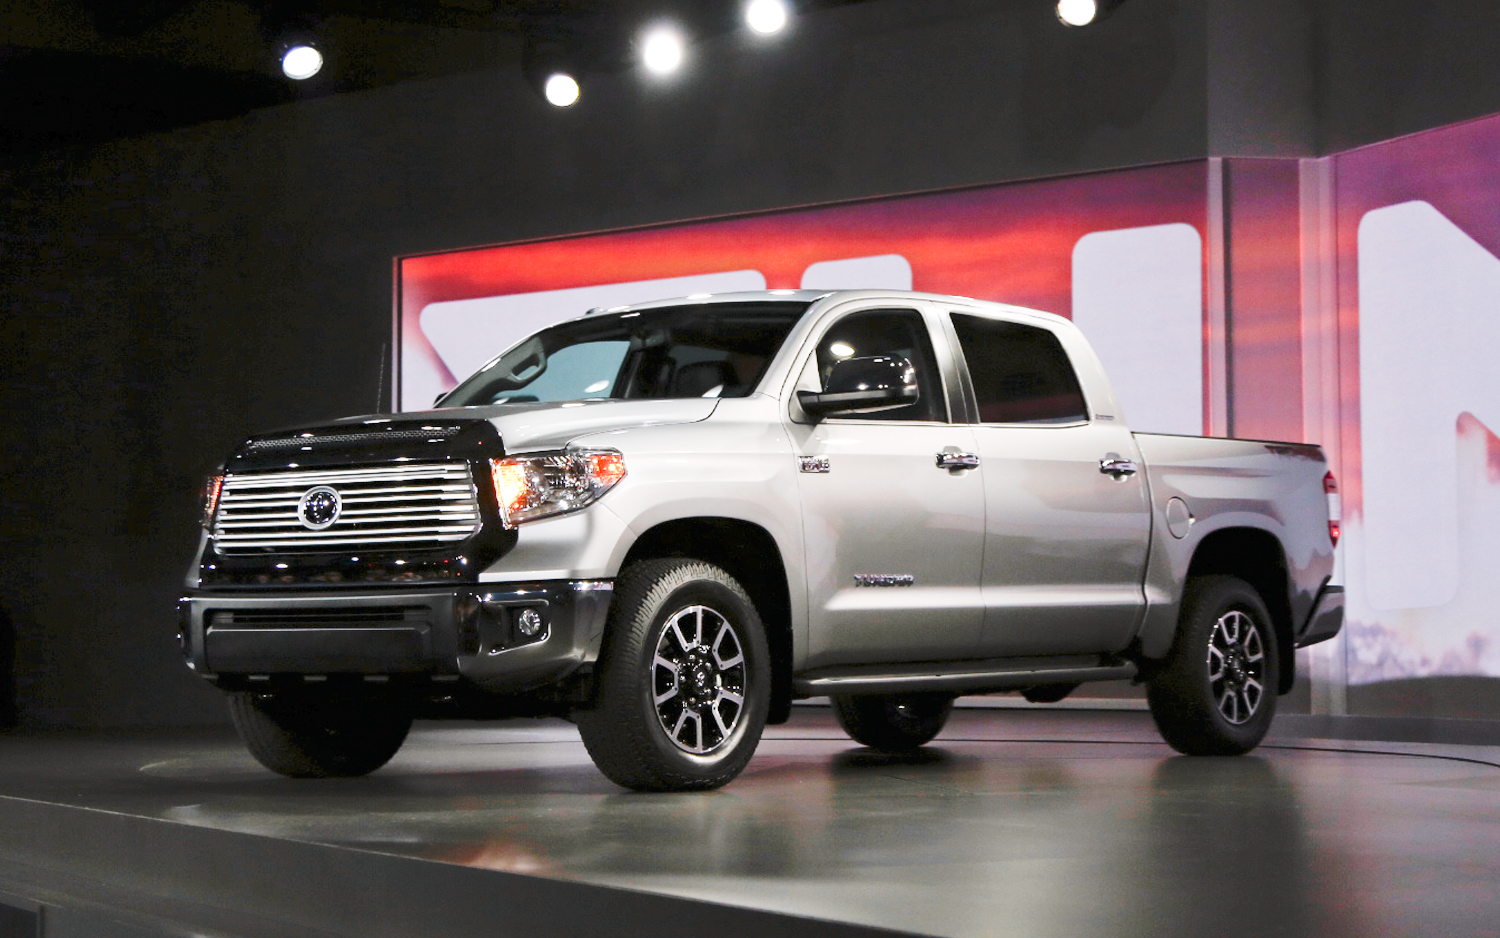 Ford, GM, Ram, And Toyota Have Been Warring For Years About Their Trucksu0027  Ever Increasing Towing Capacity Claims Even Though There Was Never Any  Agreed Upon ...